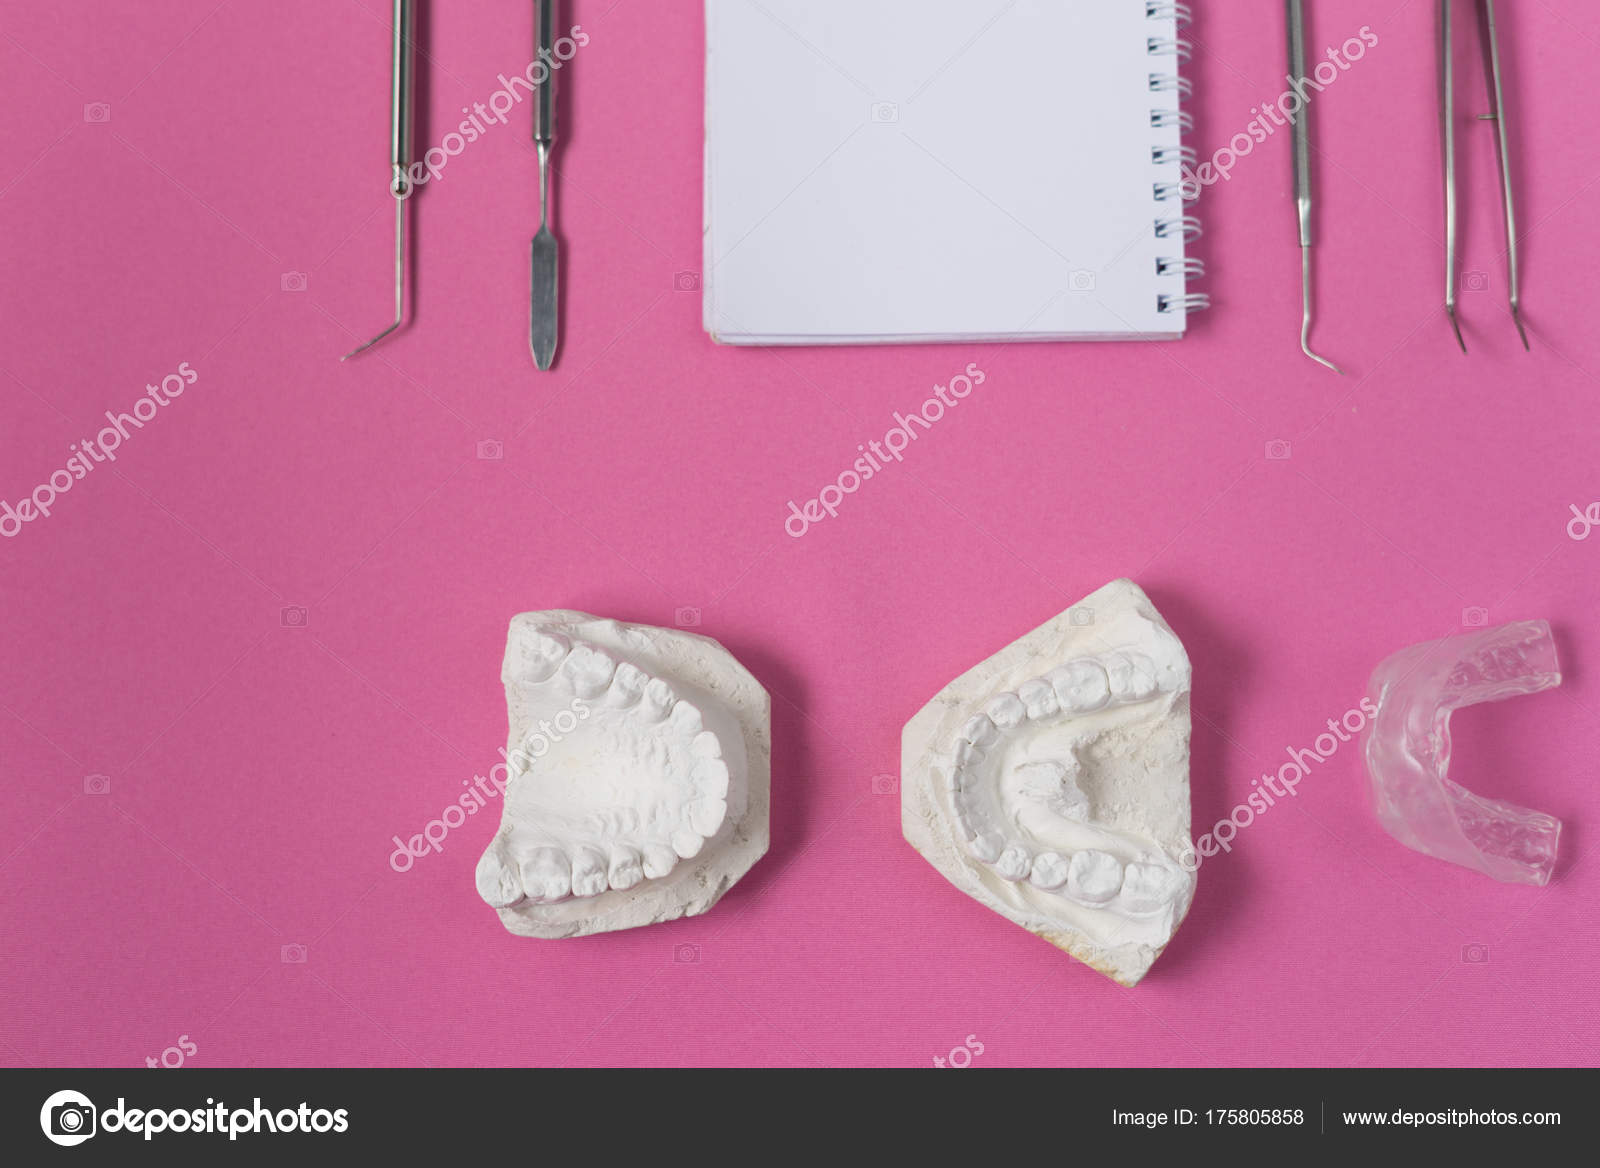 on the pink surface lie a plaster cast of teeth, a notebook and